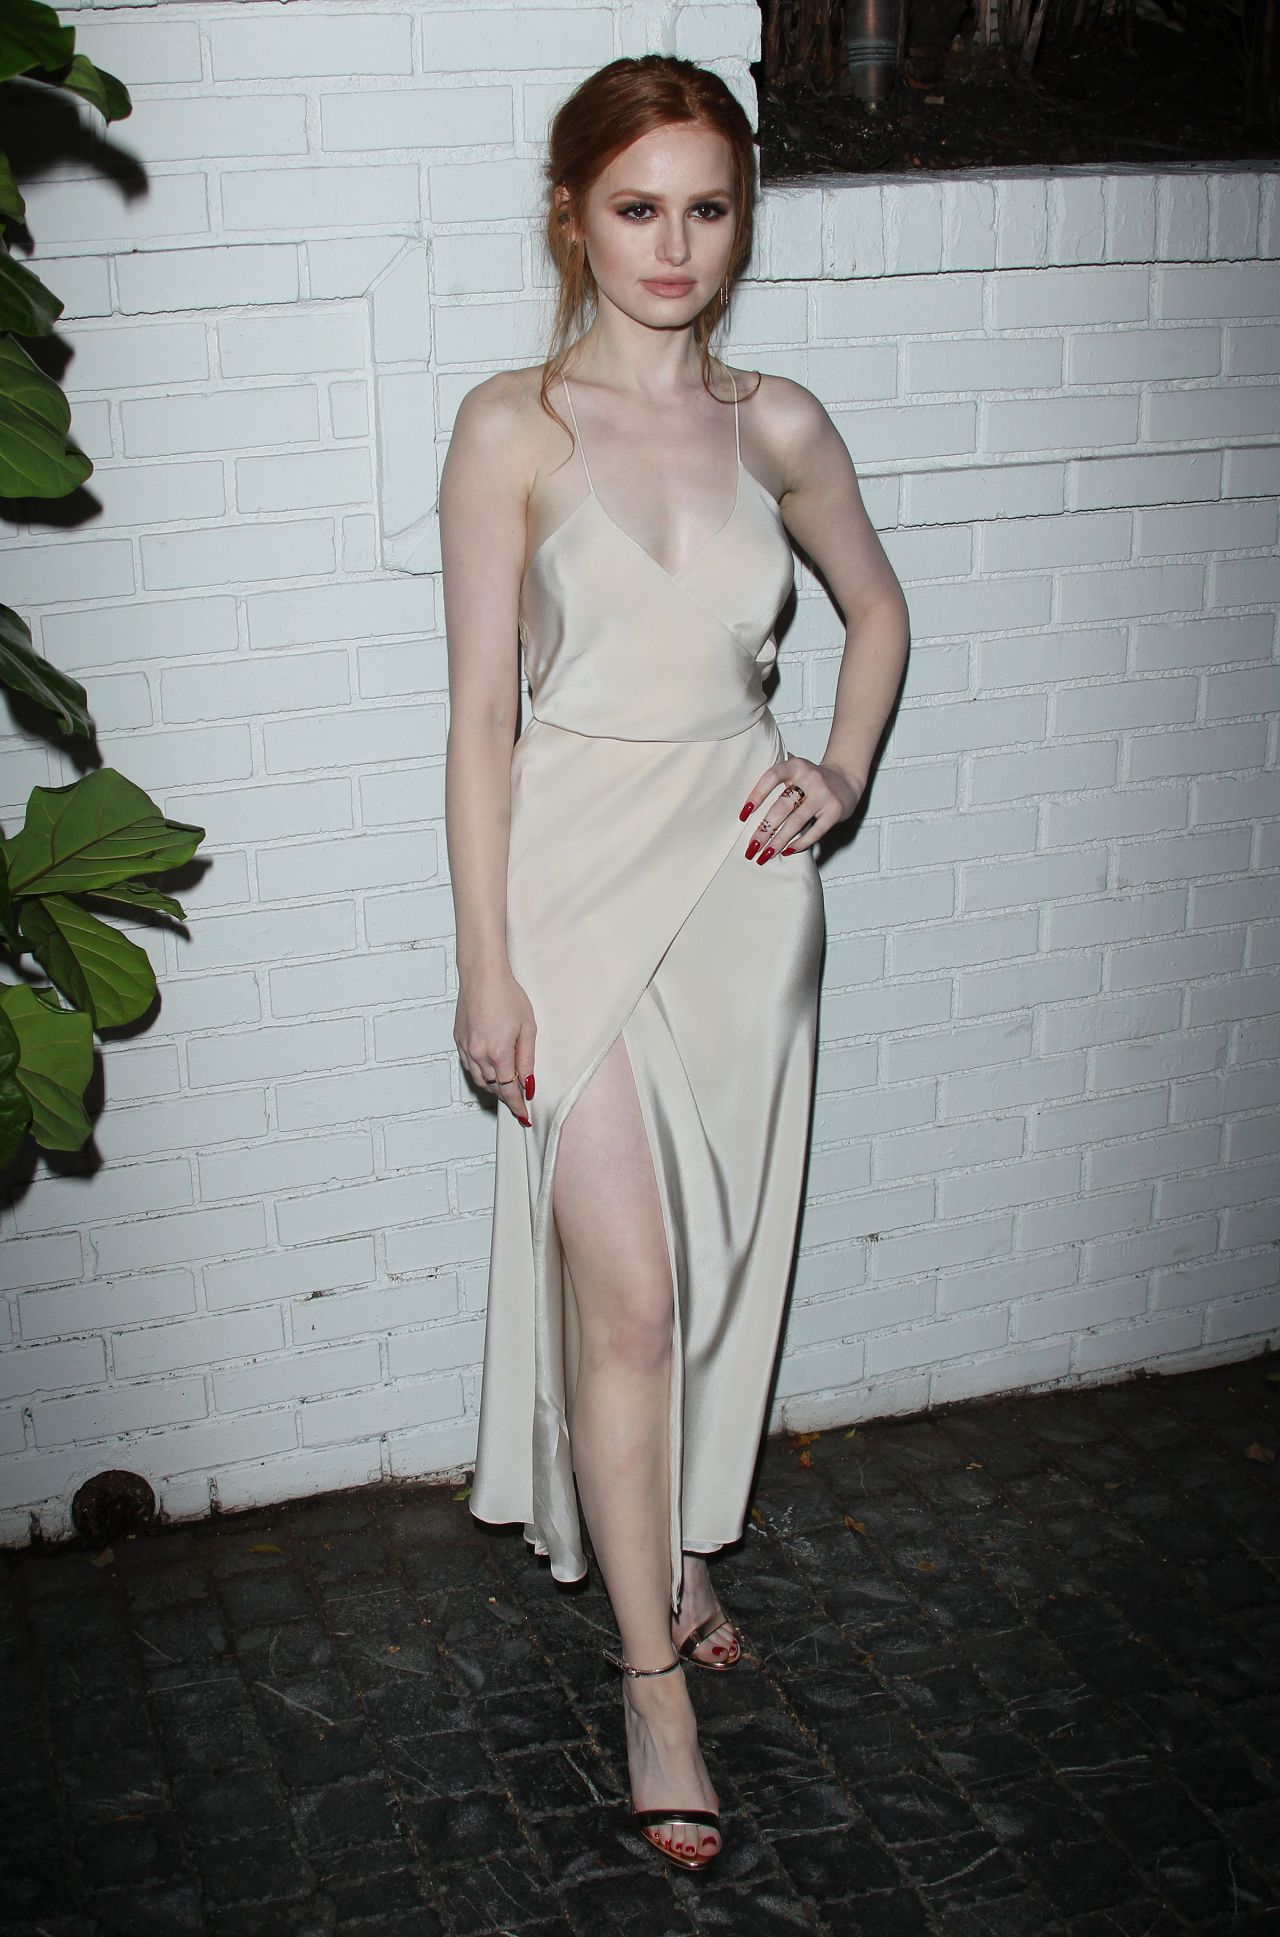 naked Hot Carrie Coon (79 foto) Hot, iCloud, braless